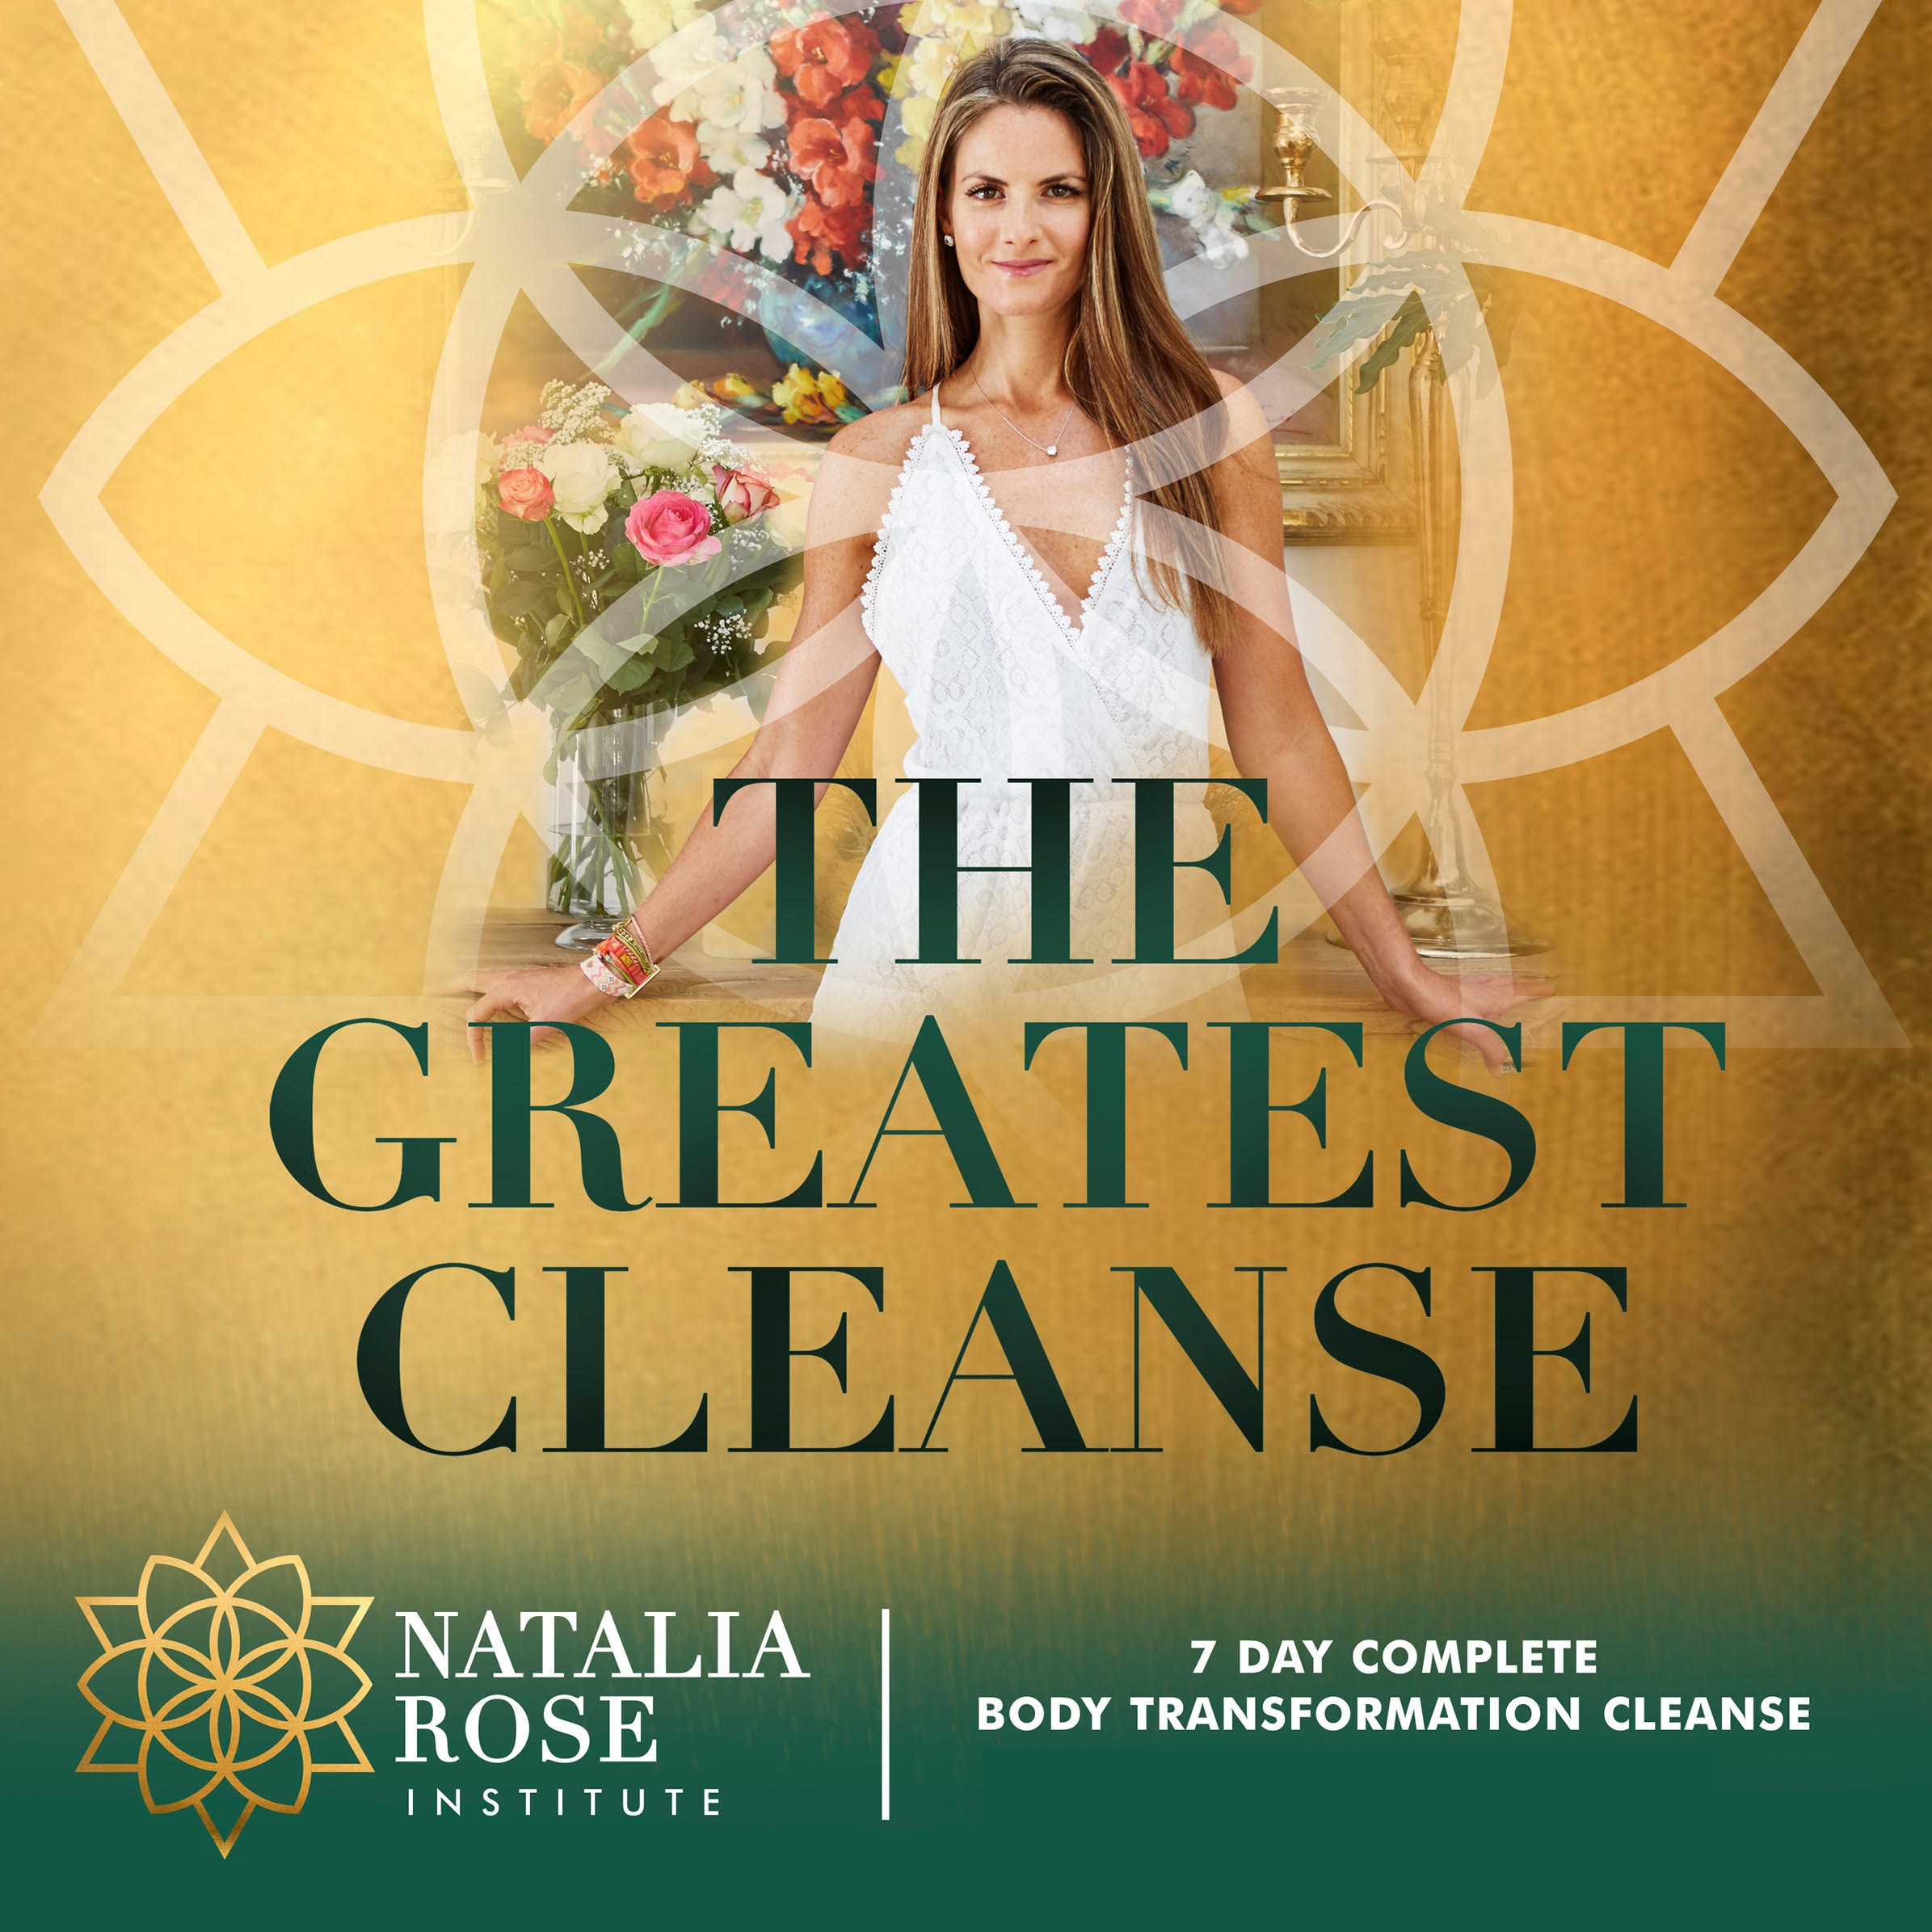 The Greatest Cleanse